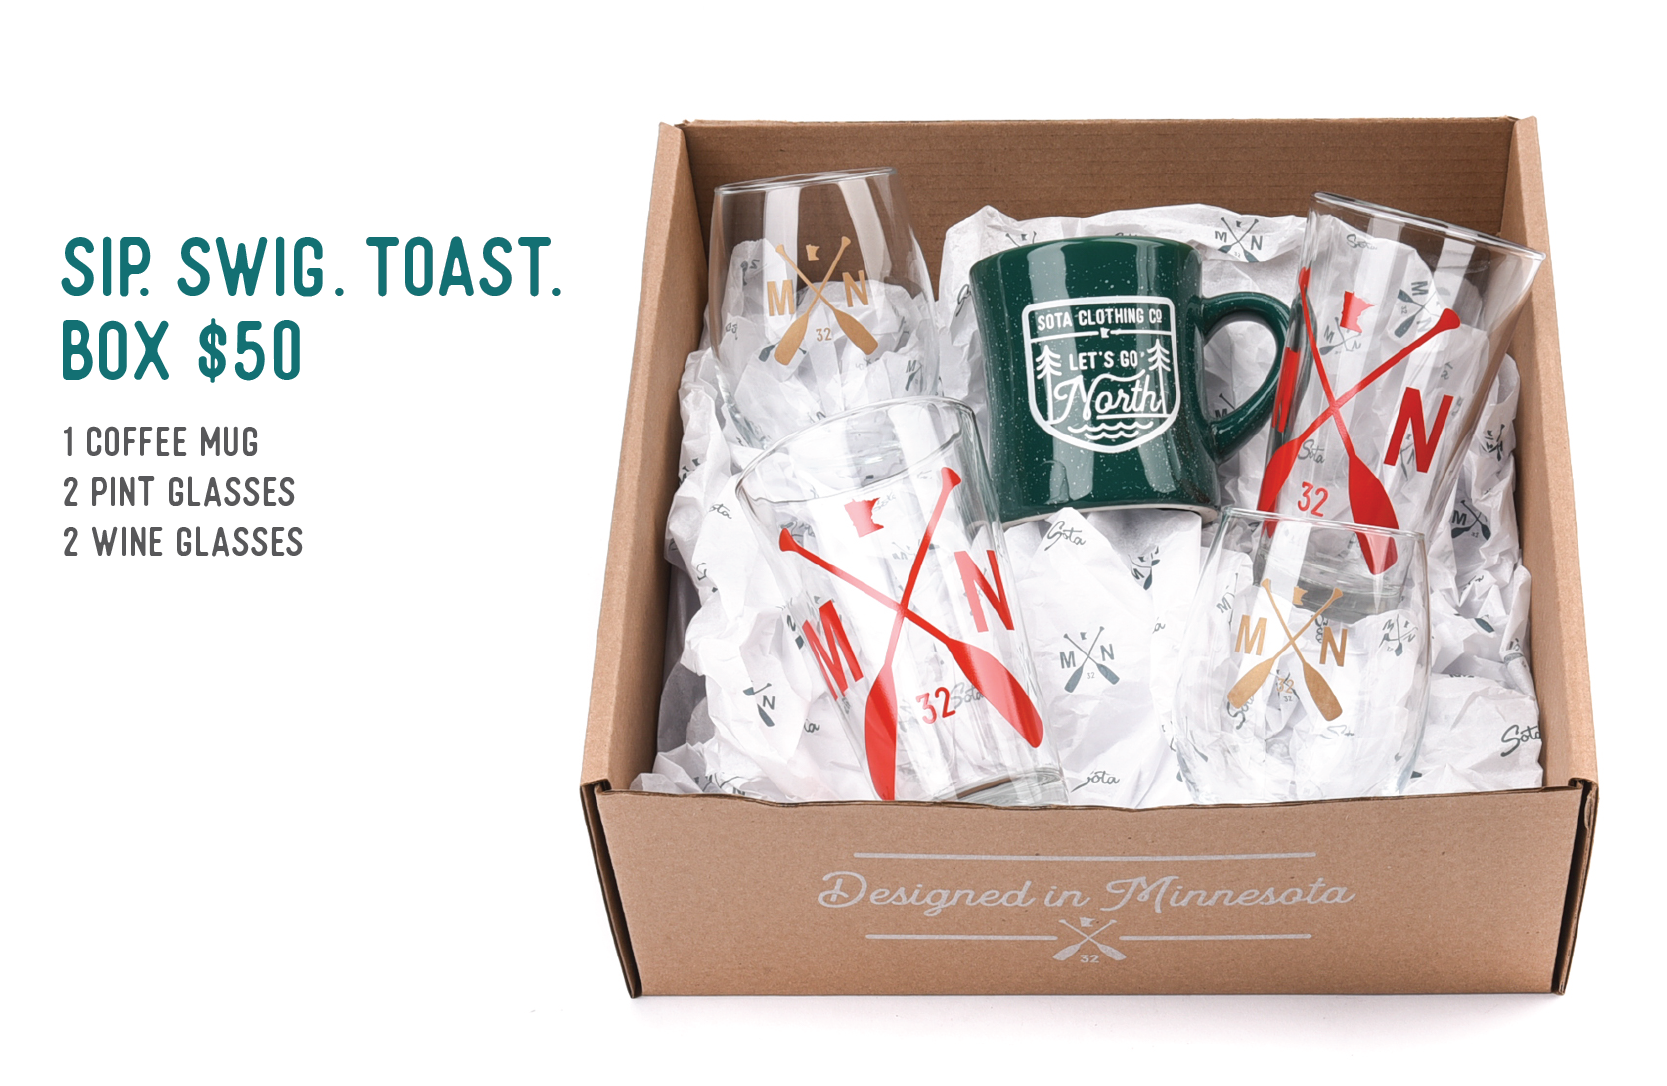 Sip. Swig. Toast. Box $50